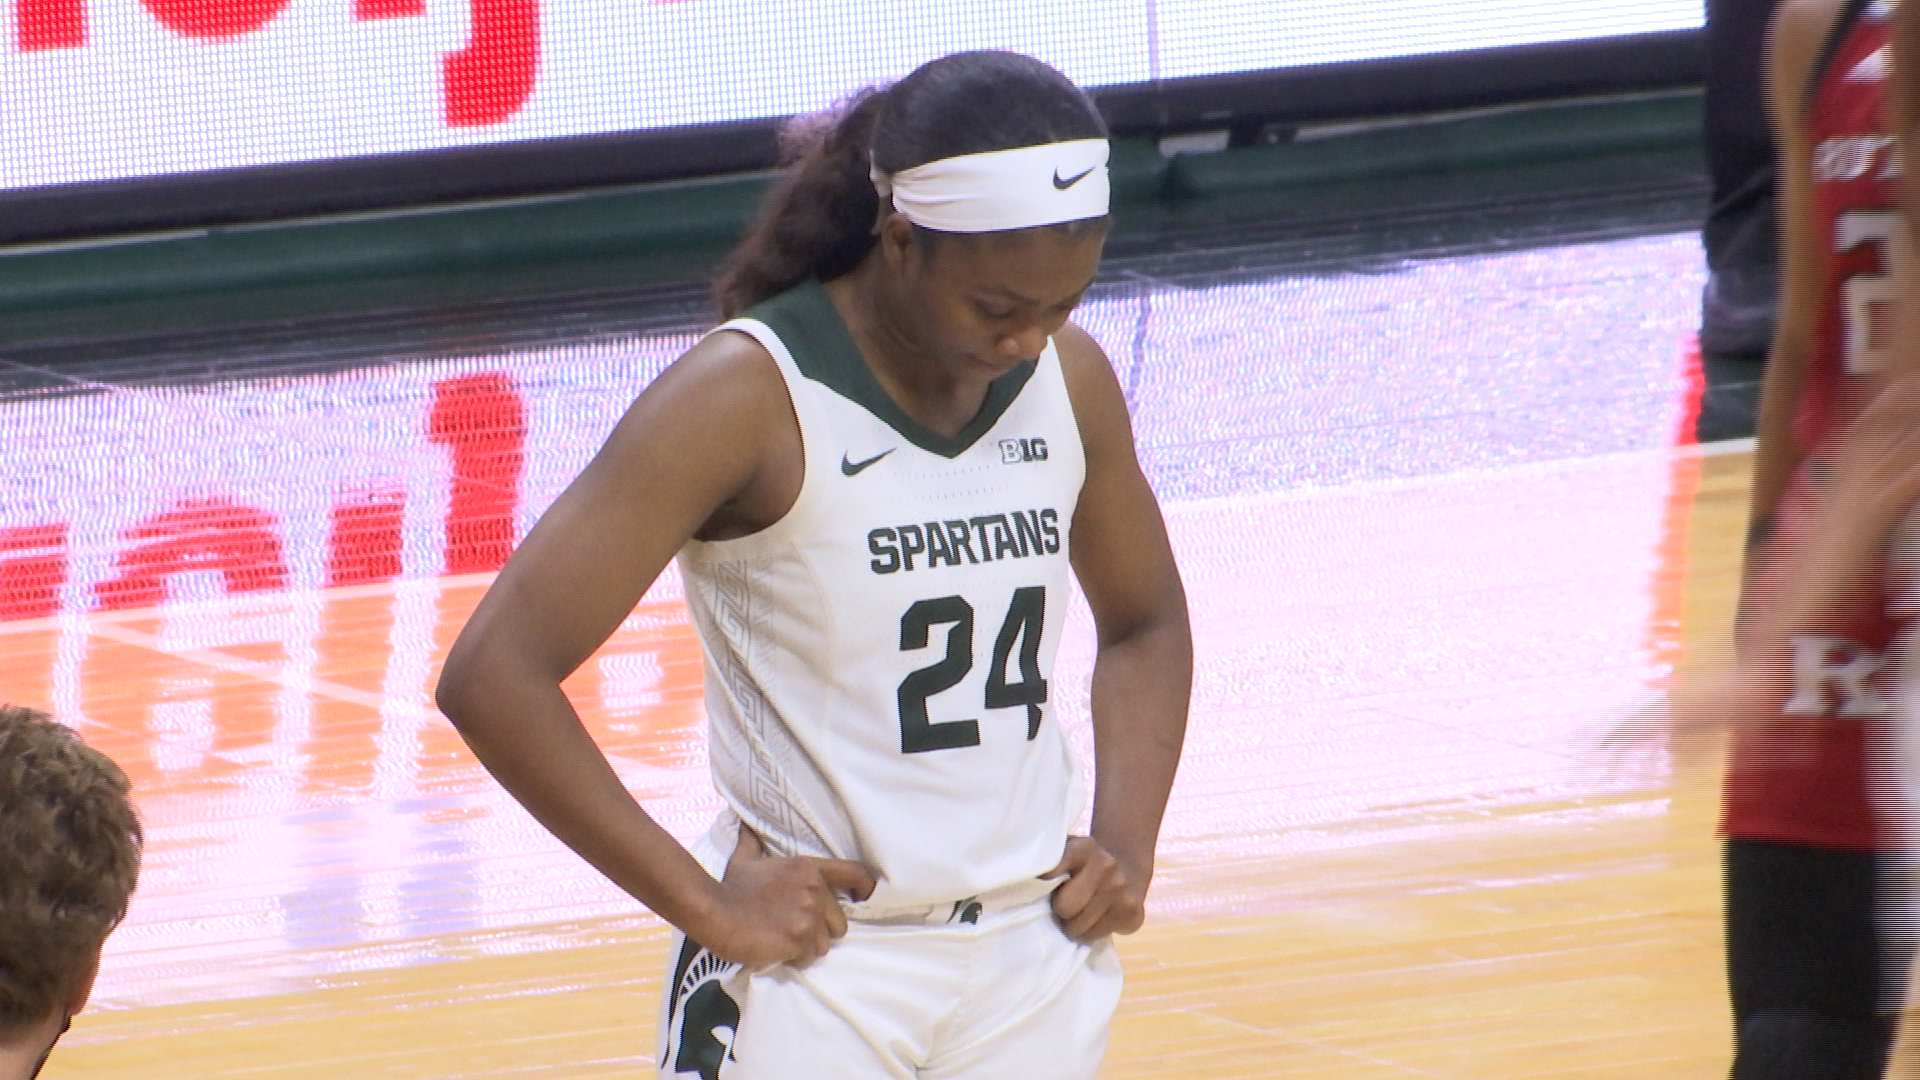 MSU falls at home to No. 25 Rutgers